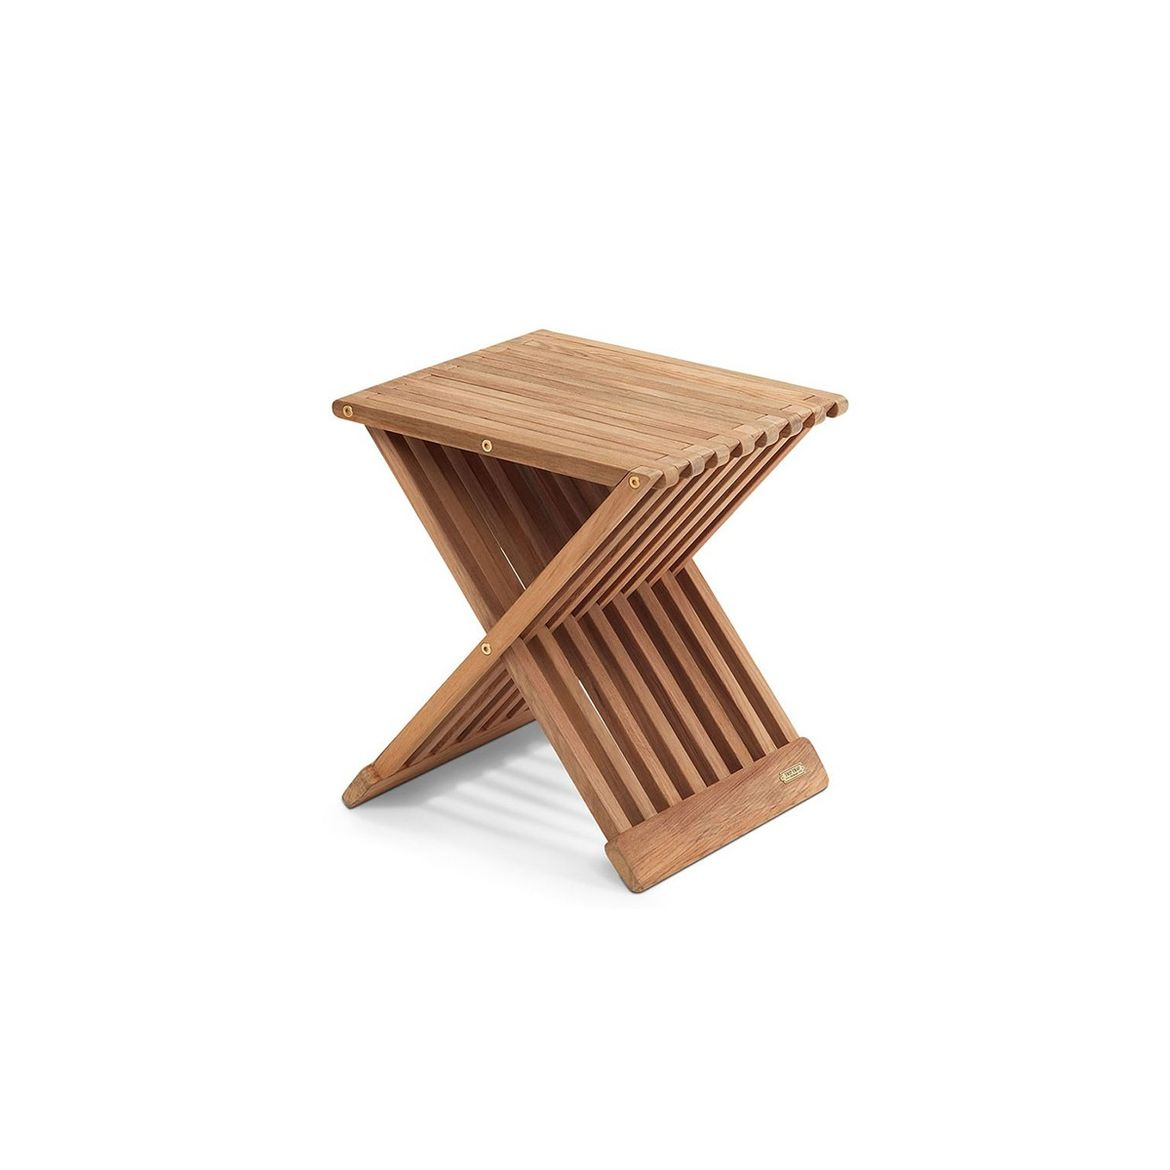 Simple teak folding stool for indoor and outdoor use